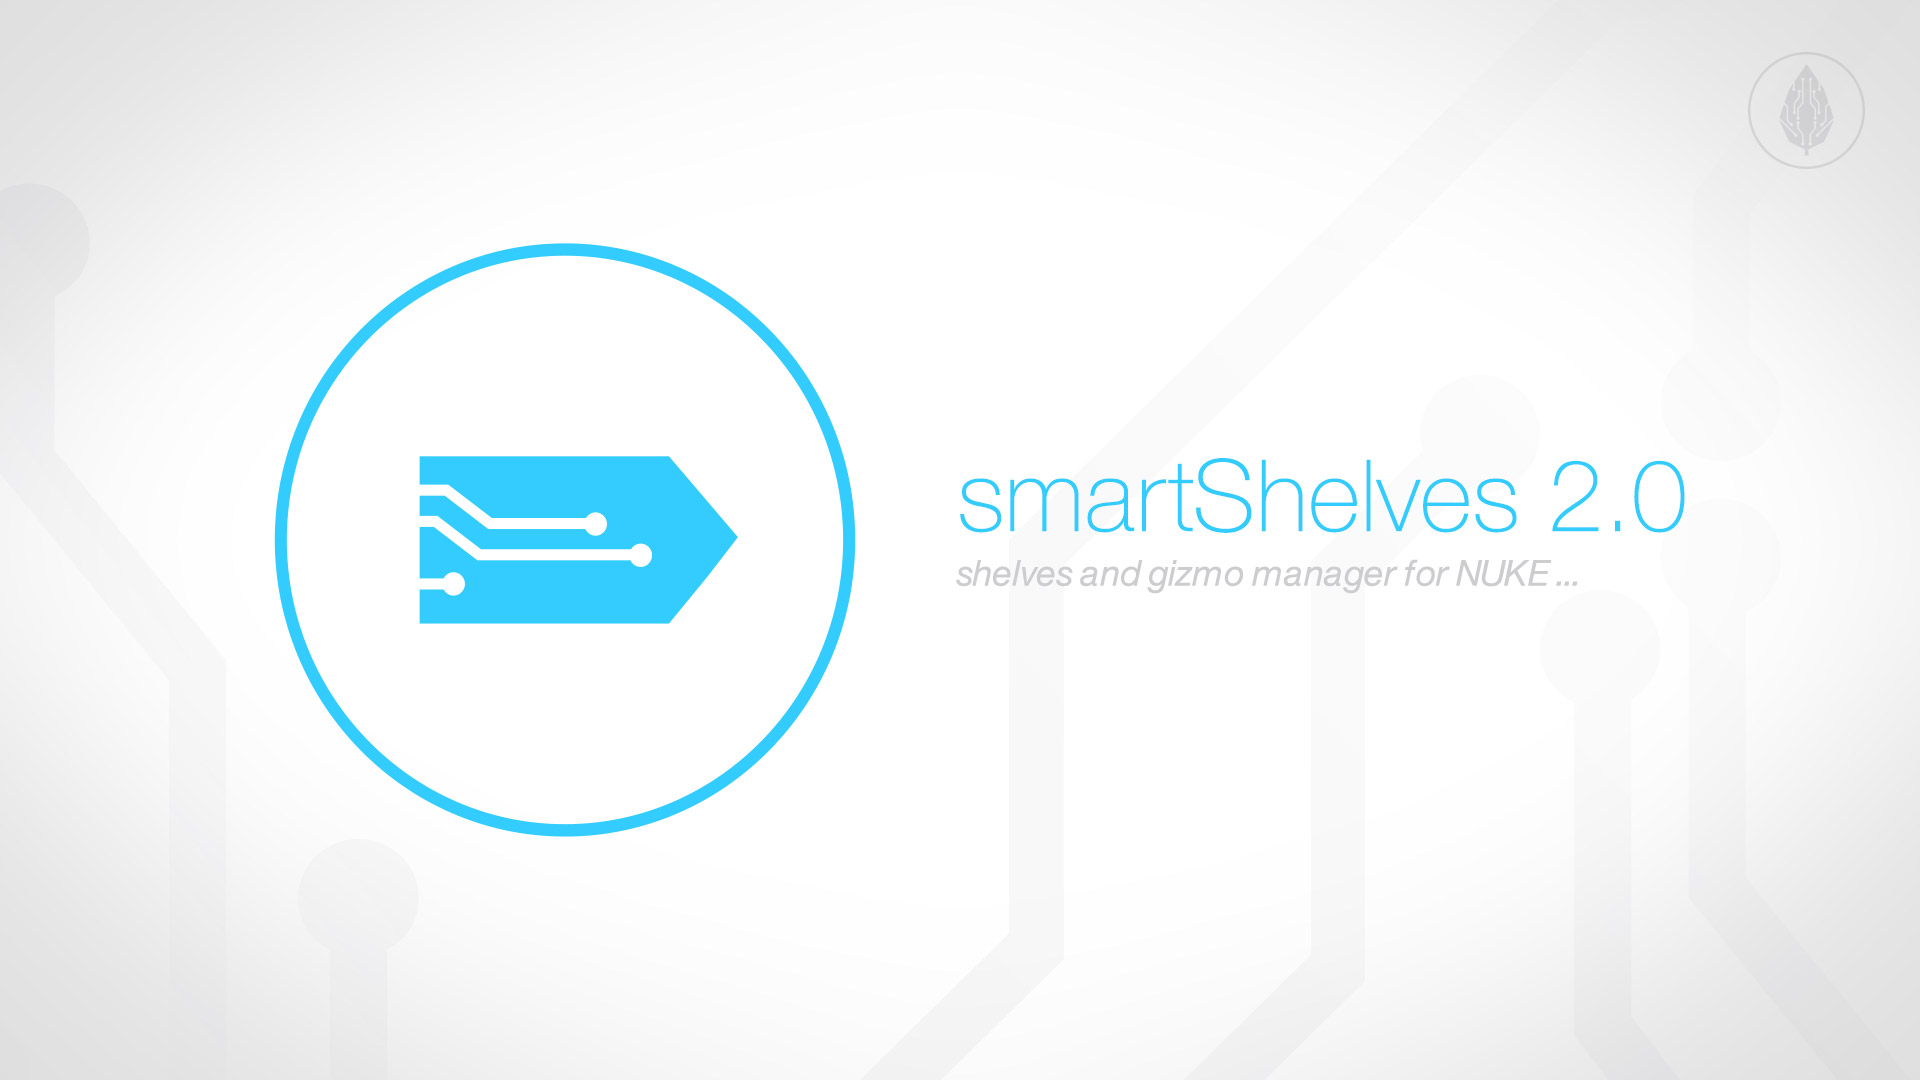 Published smartShelves 2.0